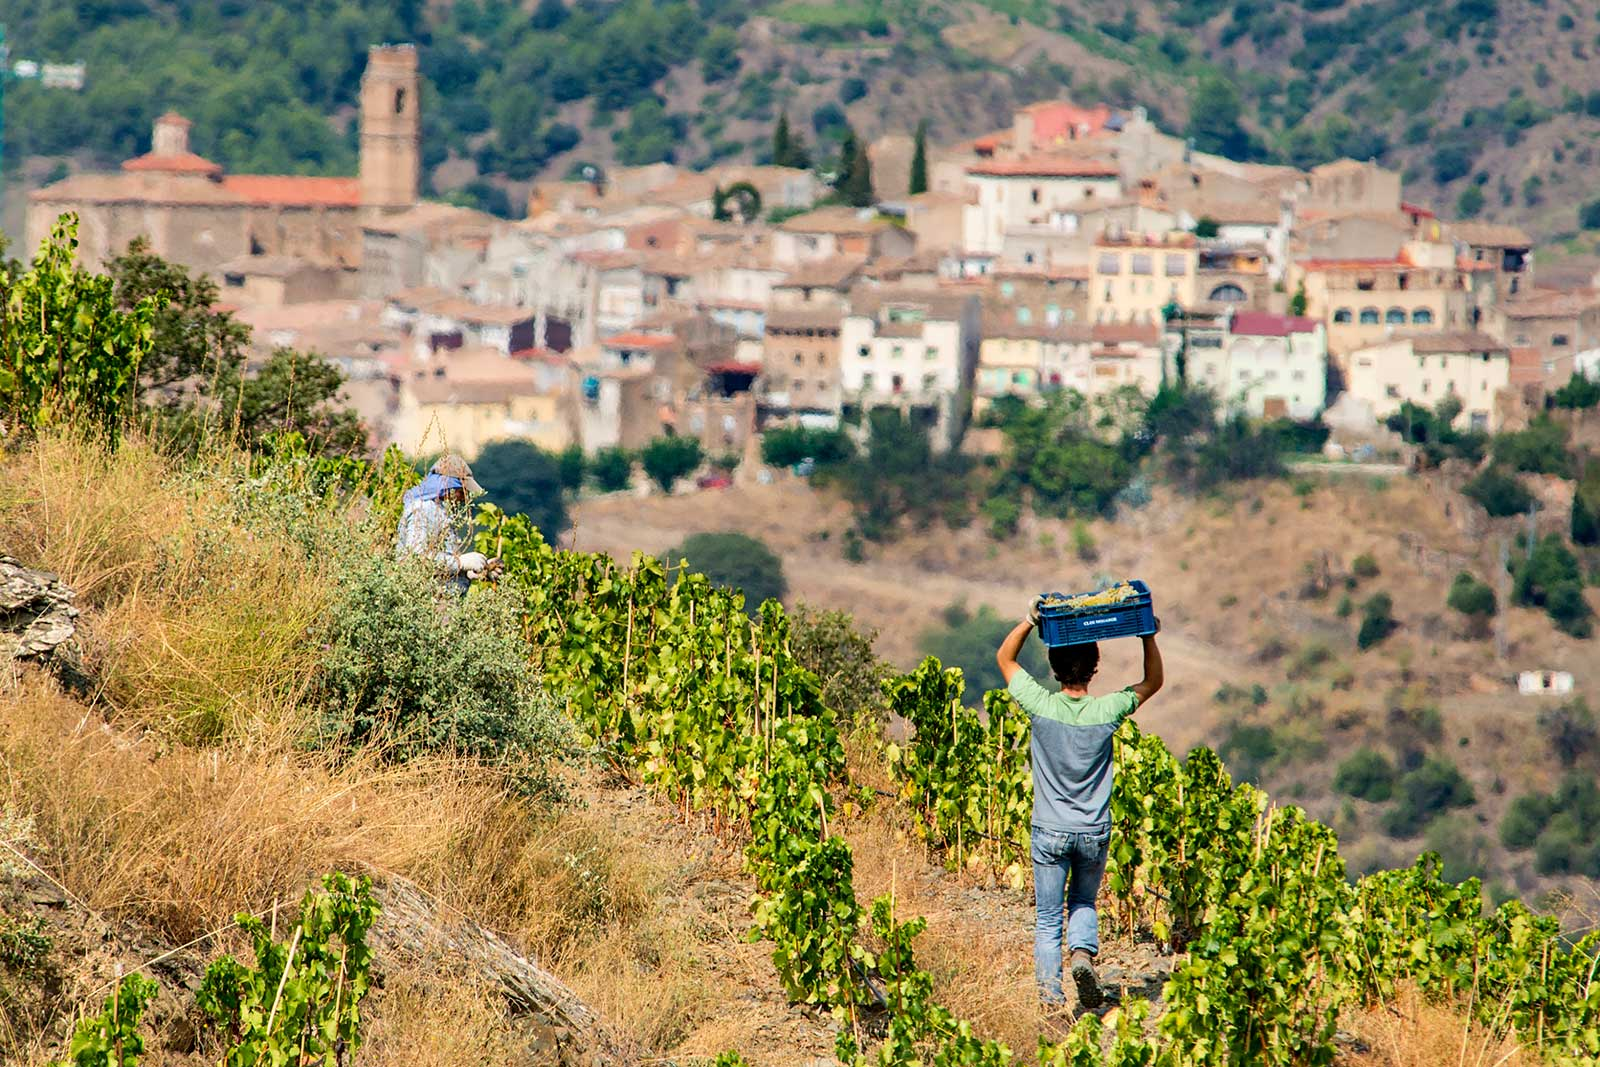 White wine grapes are harvested with the Priorat town of Gratallops in the distance. ©Clos Mogador